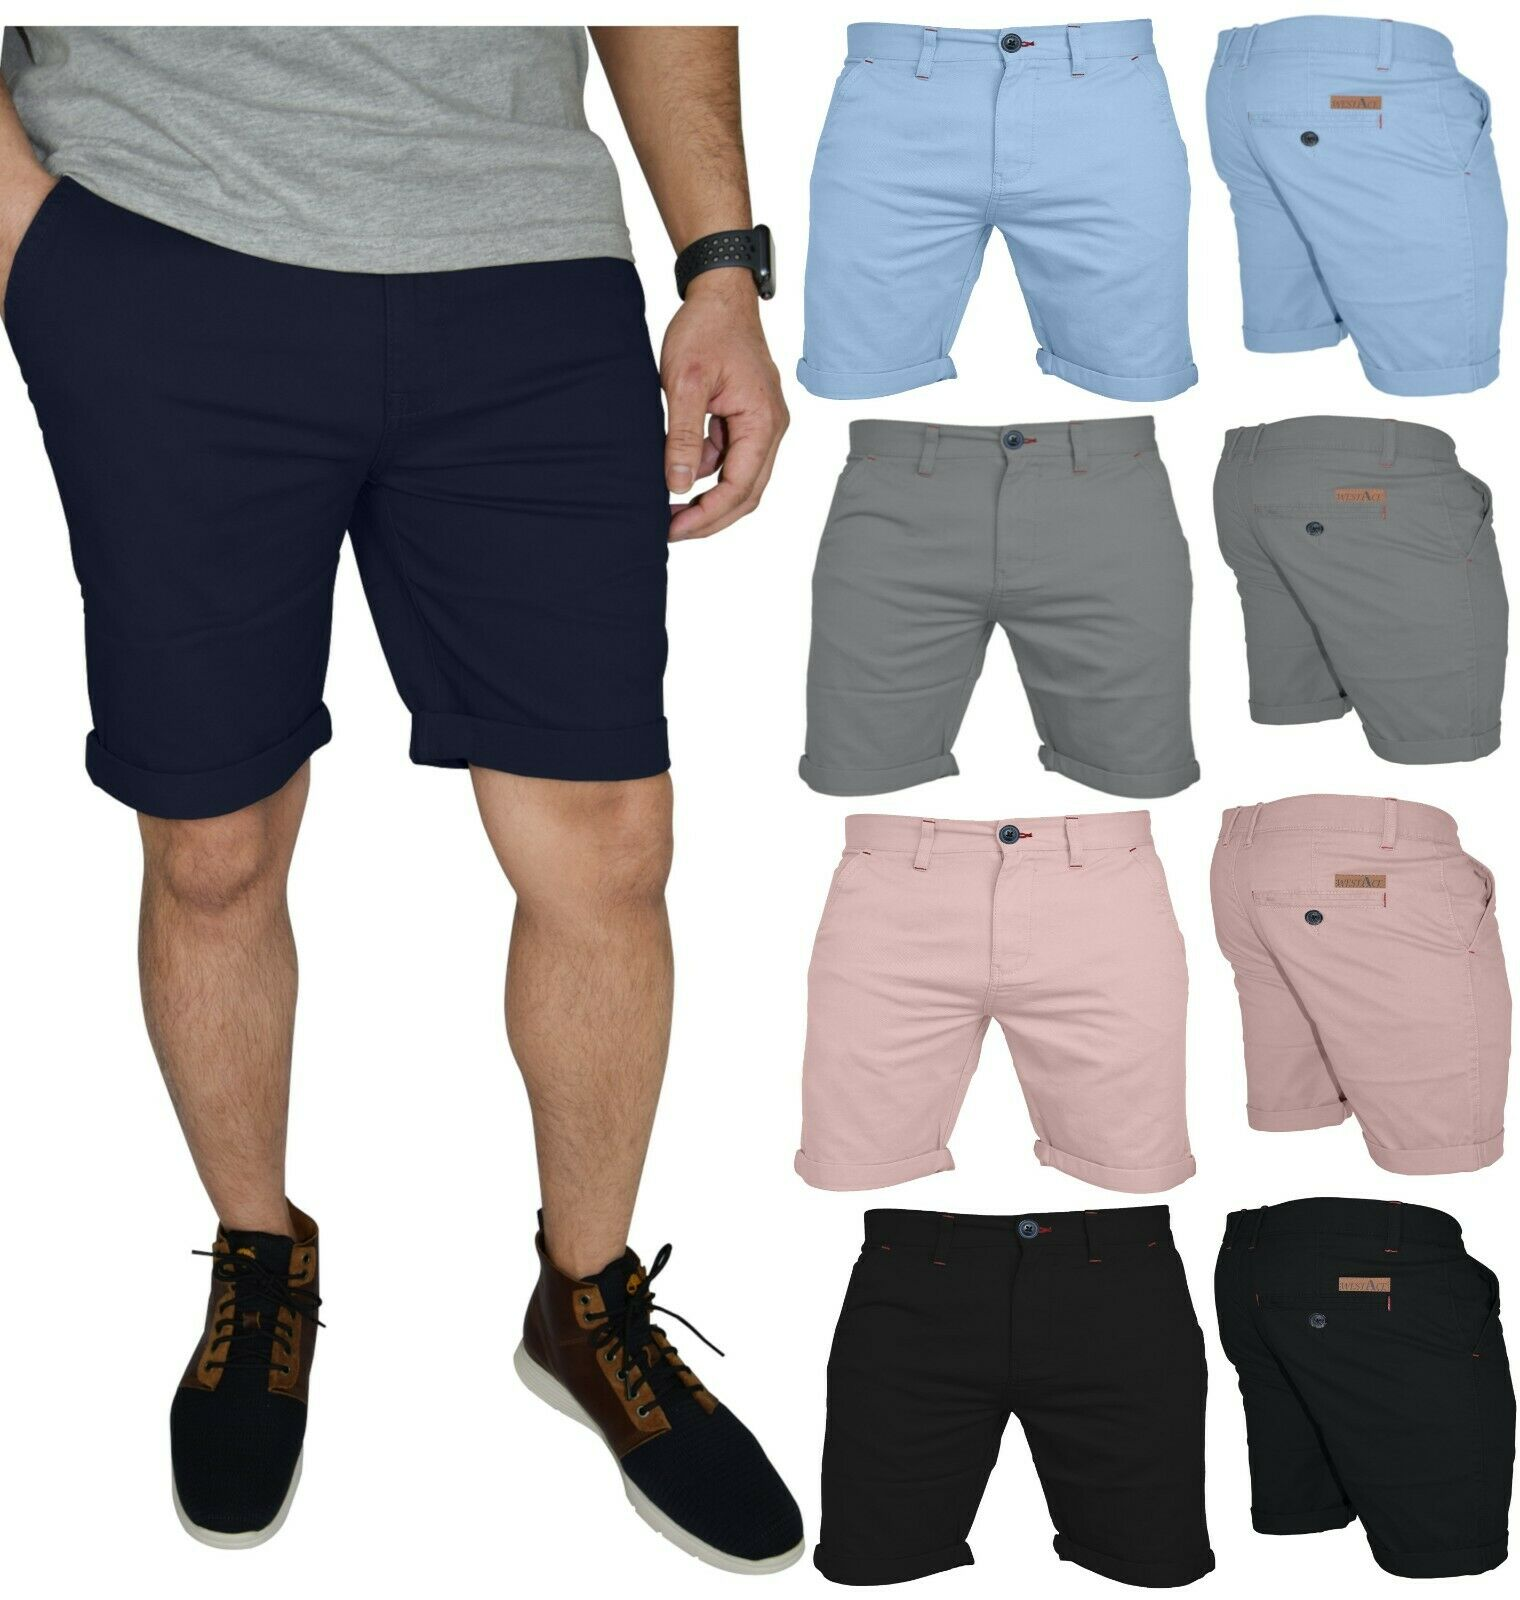 Mens Stretch Chino Shorts Casual Flat Front Slim Fit Spandex Half Pant Clothing, Shoes & Accessories